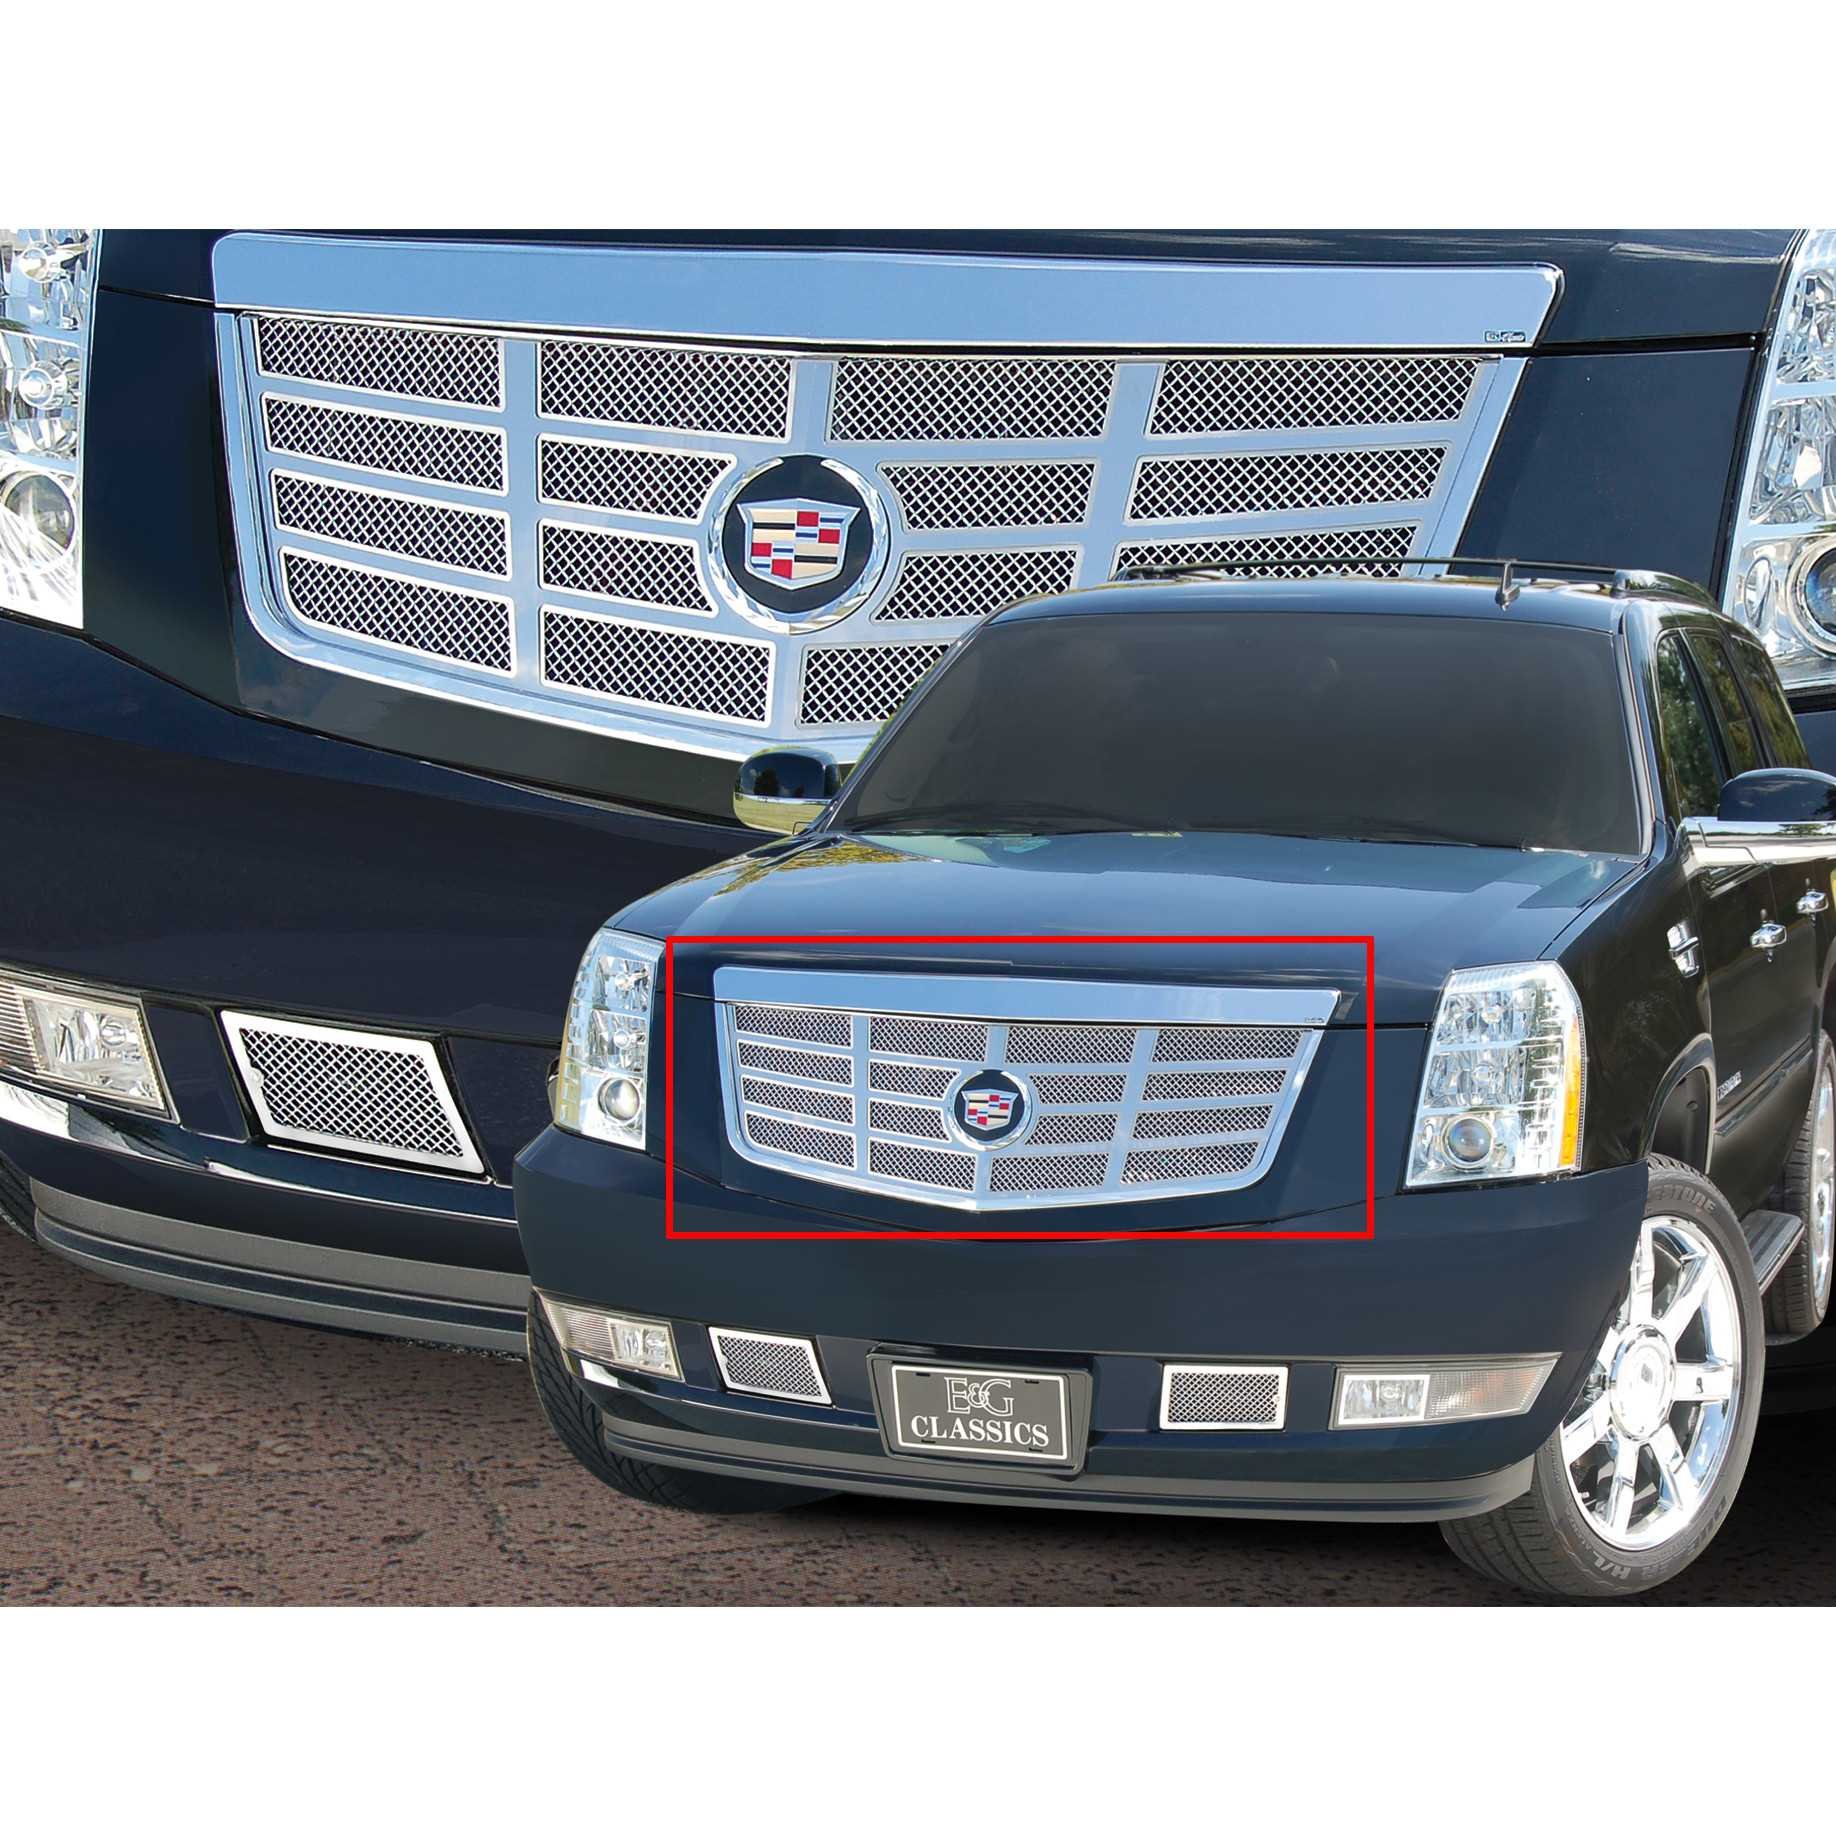 E g classicse g classics 2007 2014 cadillac escalade grille classic sixteen grille upper only 1009 0016 07